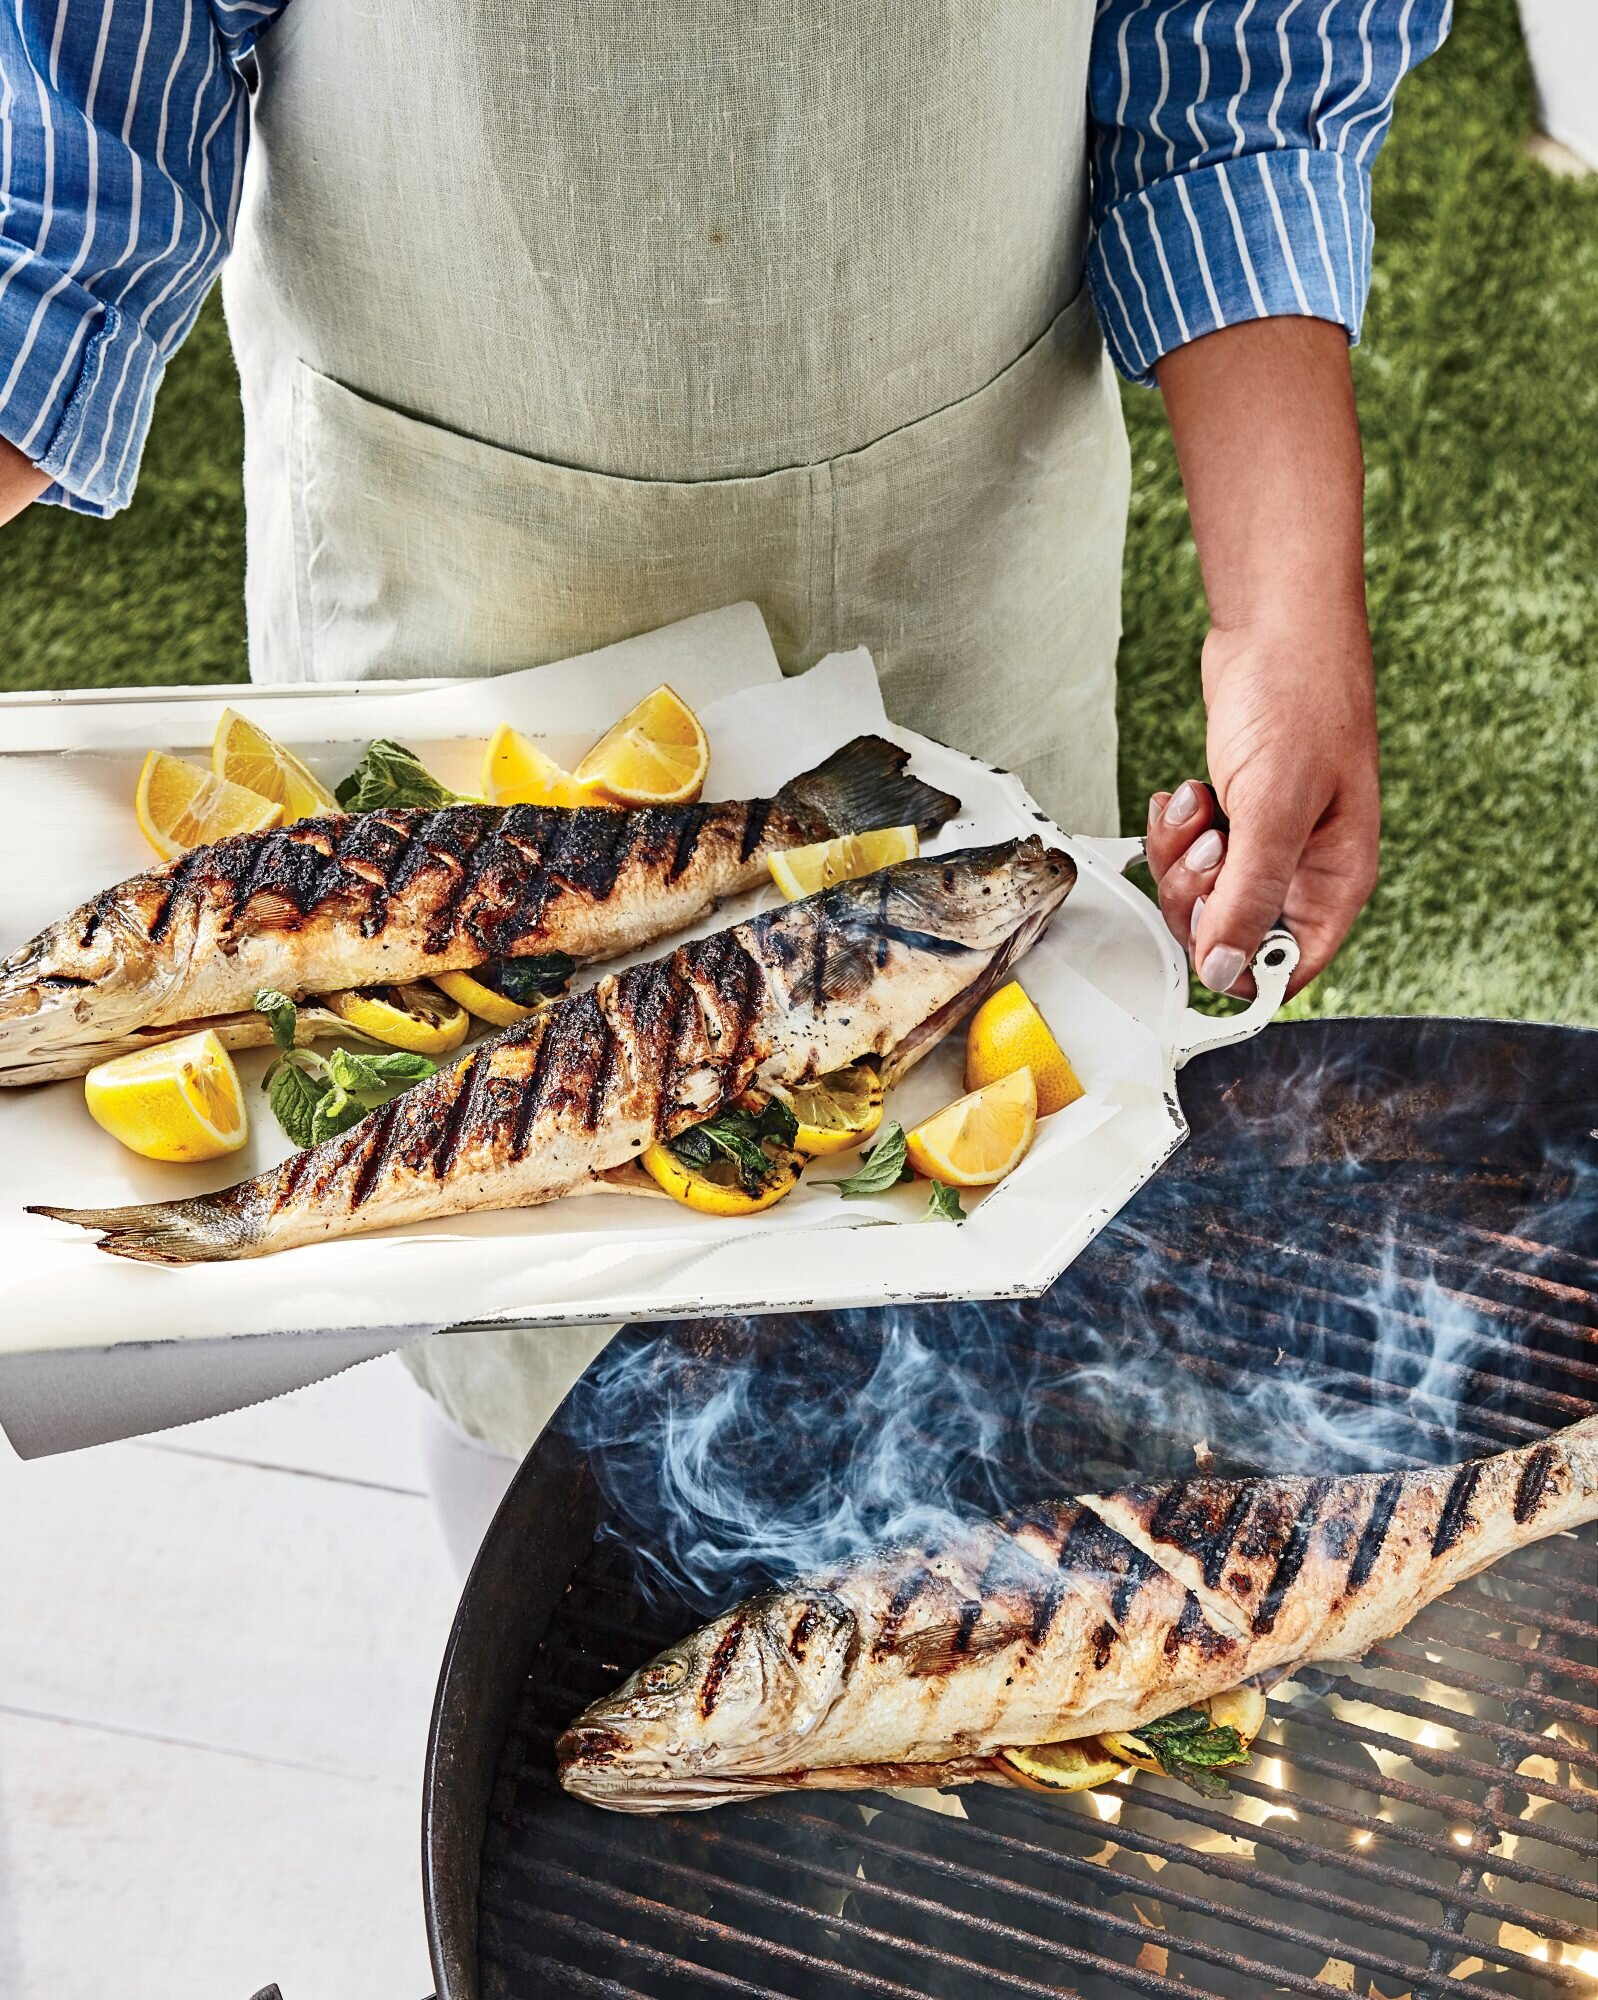 10+ Impressive Whole Fish Recipes to Make at Home